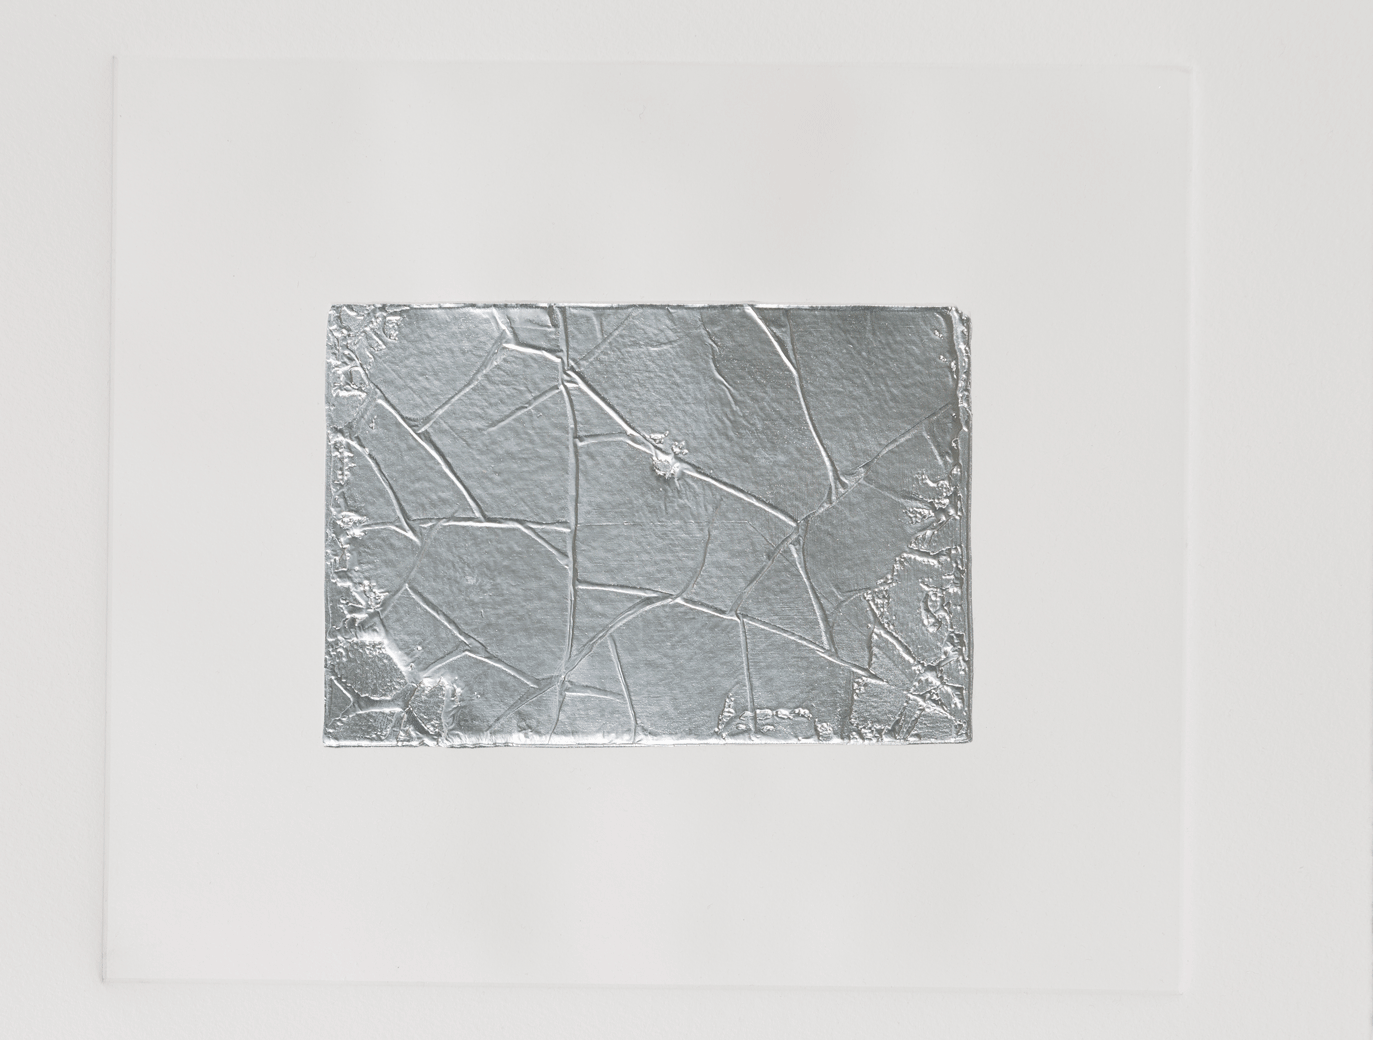 Against Photography, 2017, 12 Routed aluminum plates, 24 x 28 cm each, 4 Sets of intaglio and chine-collé prints, 27 x 31 cm each